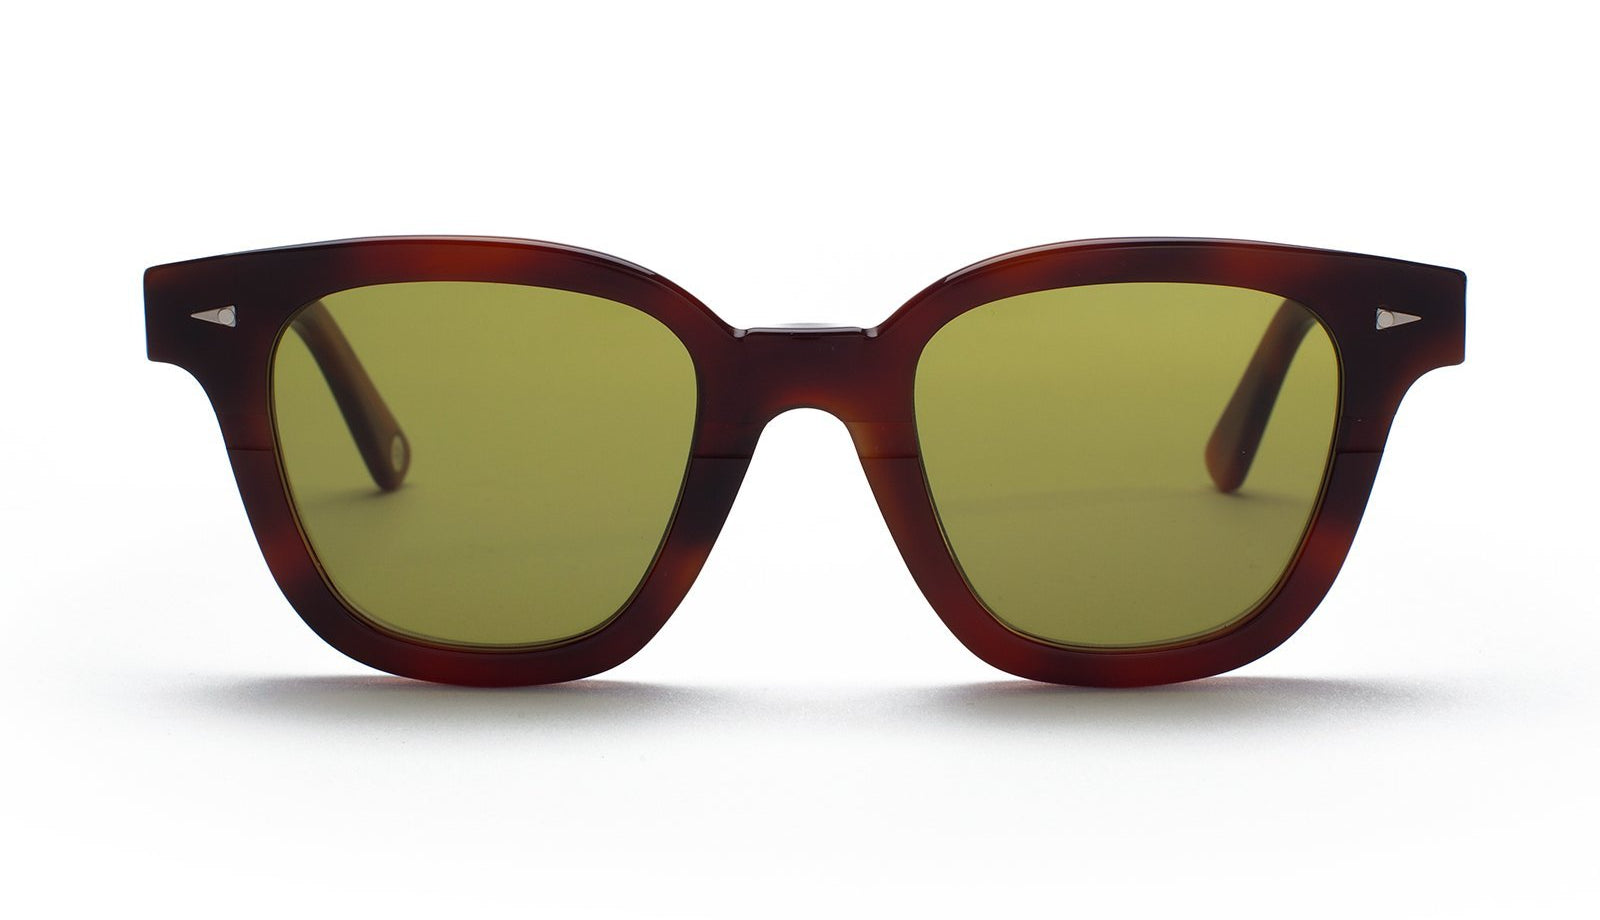 Ahlem Bonne Nouvelle Sunglasses Brown Turtle